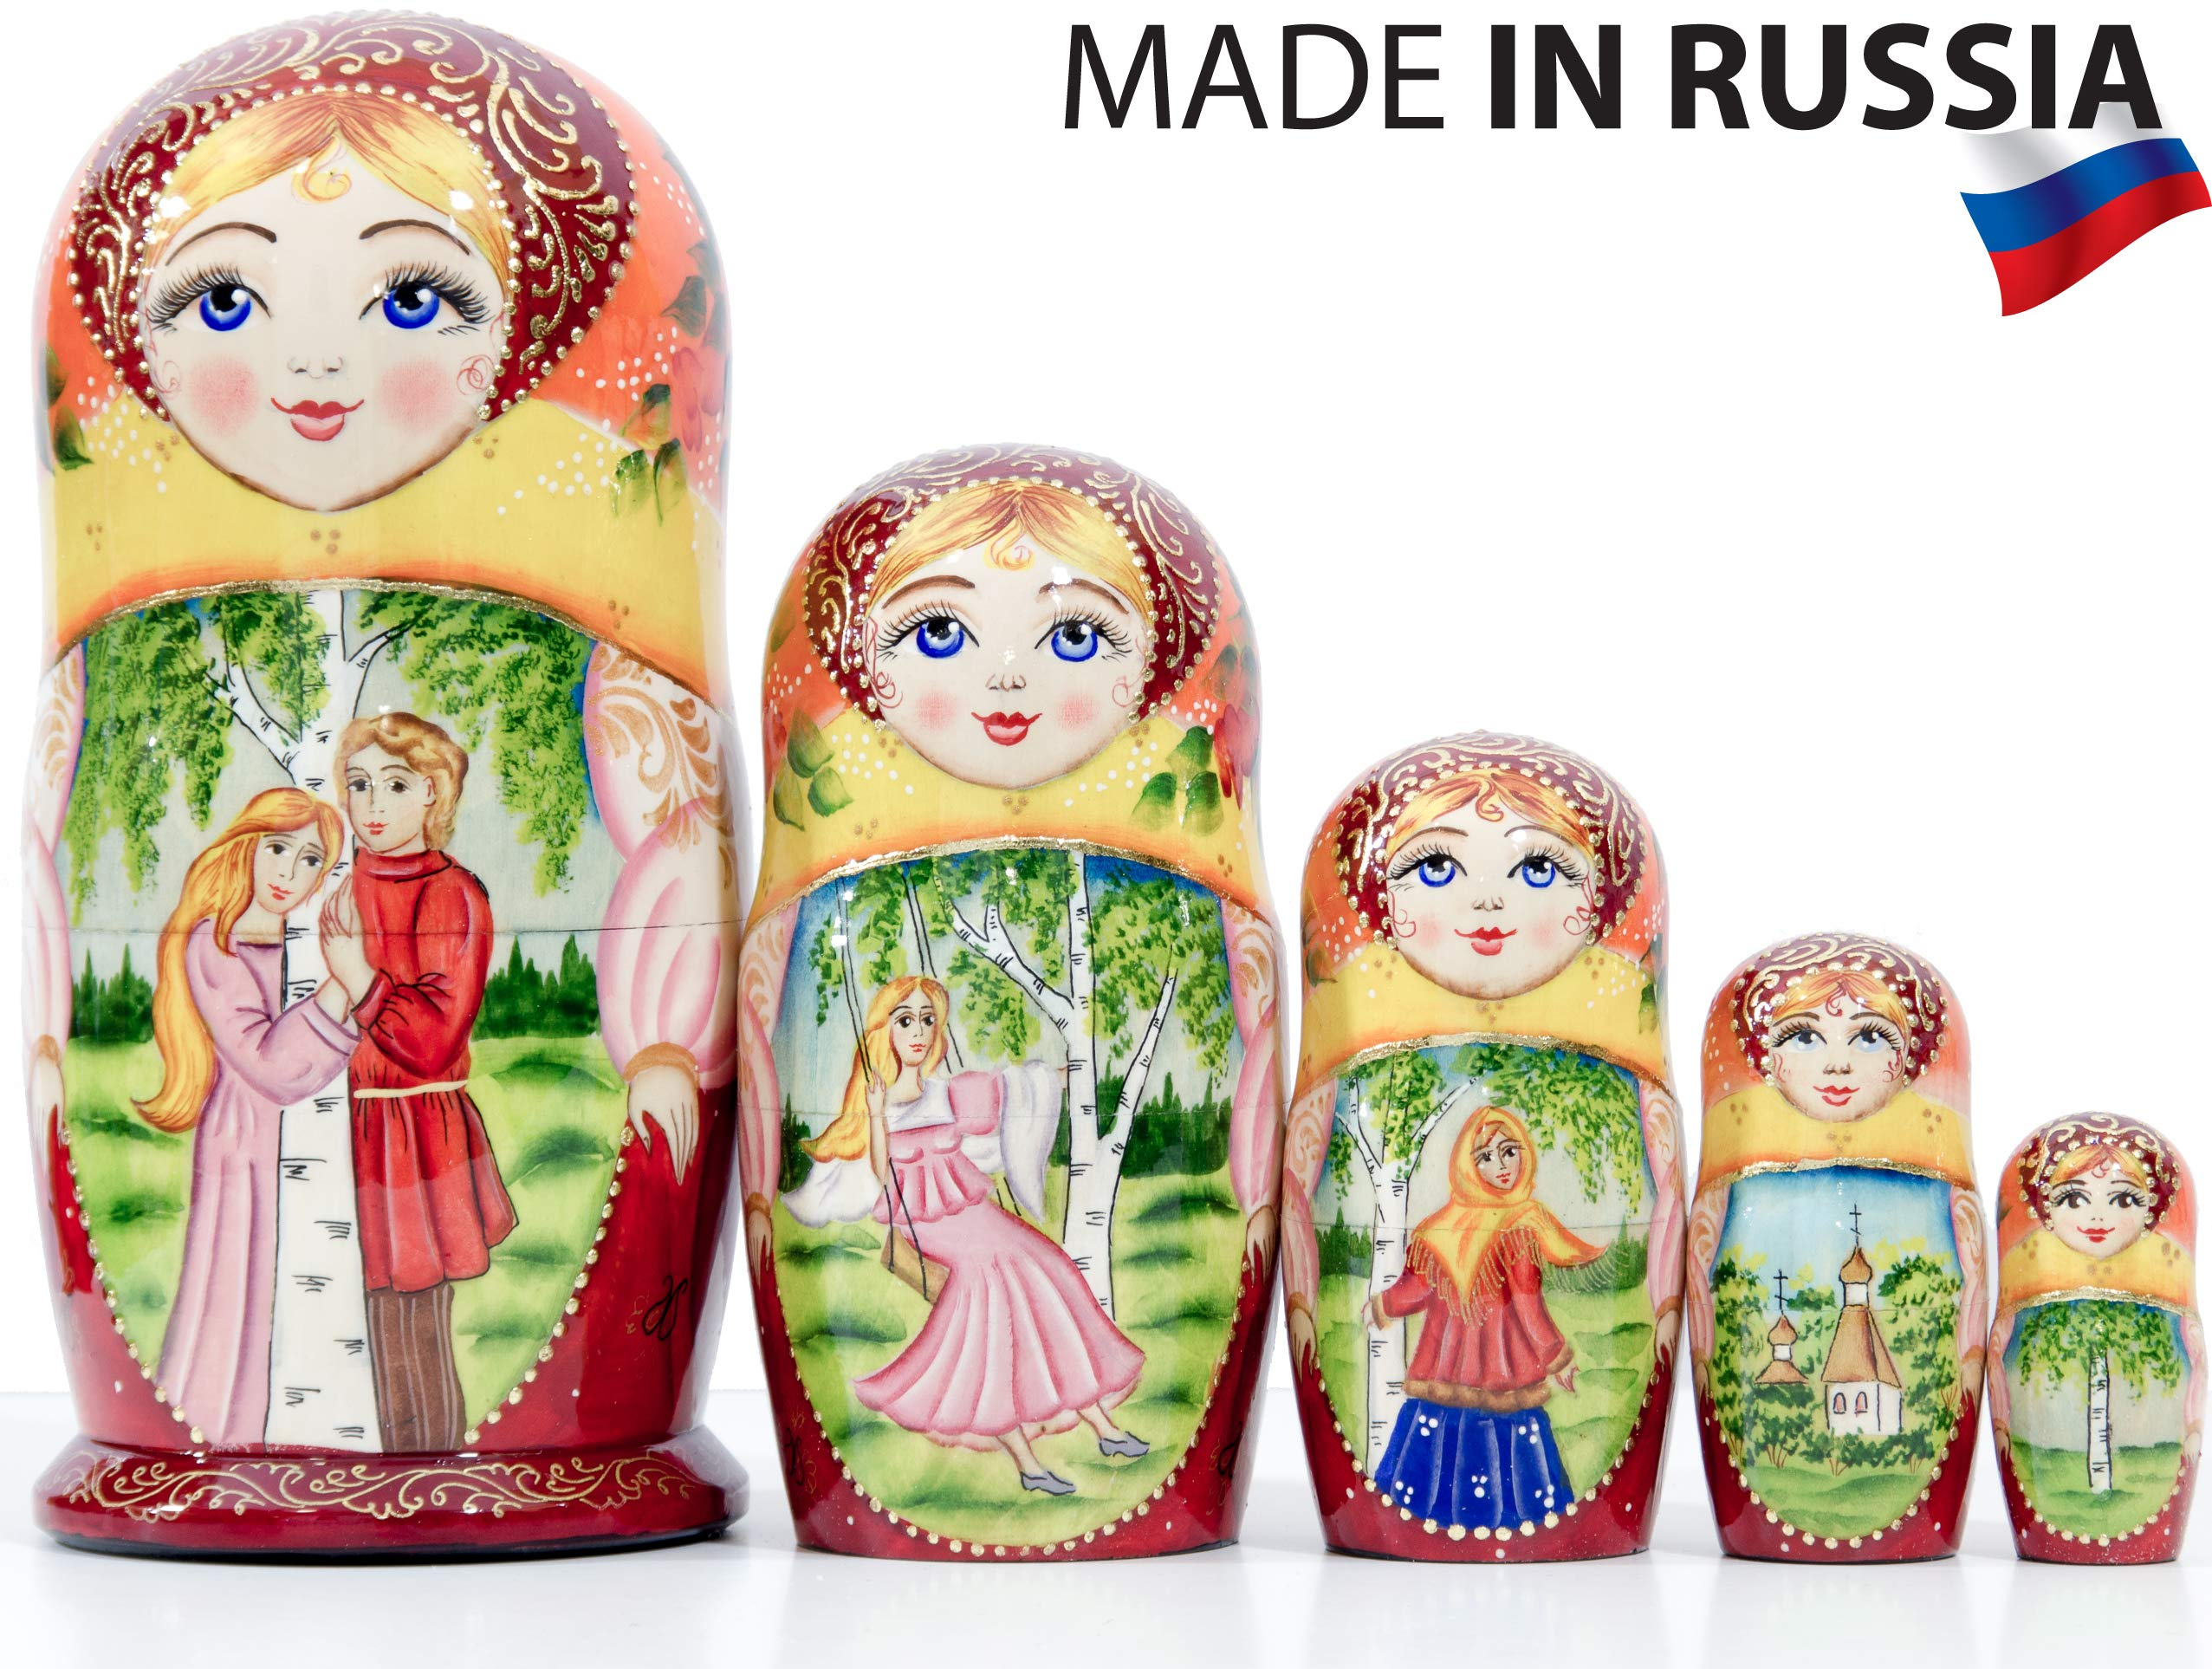 Russian Nesting Doll - Village Scenes - Hand Painted in Russia - 5 Color/Size Variations - Traditional Matryoshka Babushka (6.75``(5 Dolls in 1), Scene L) by craftsfromrussia (Image #4)